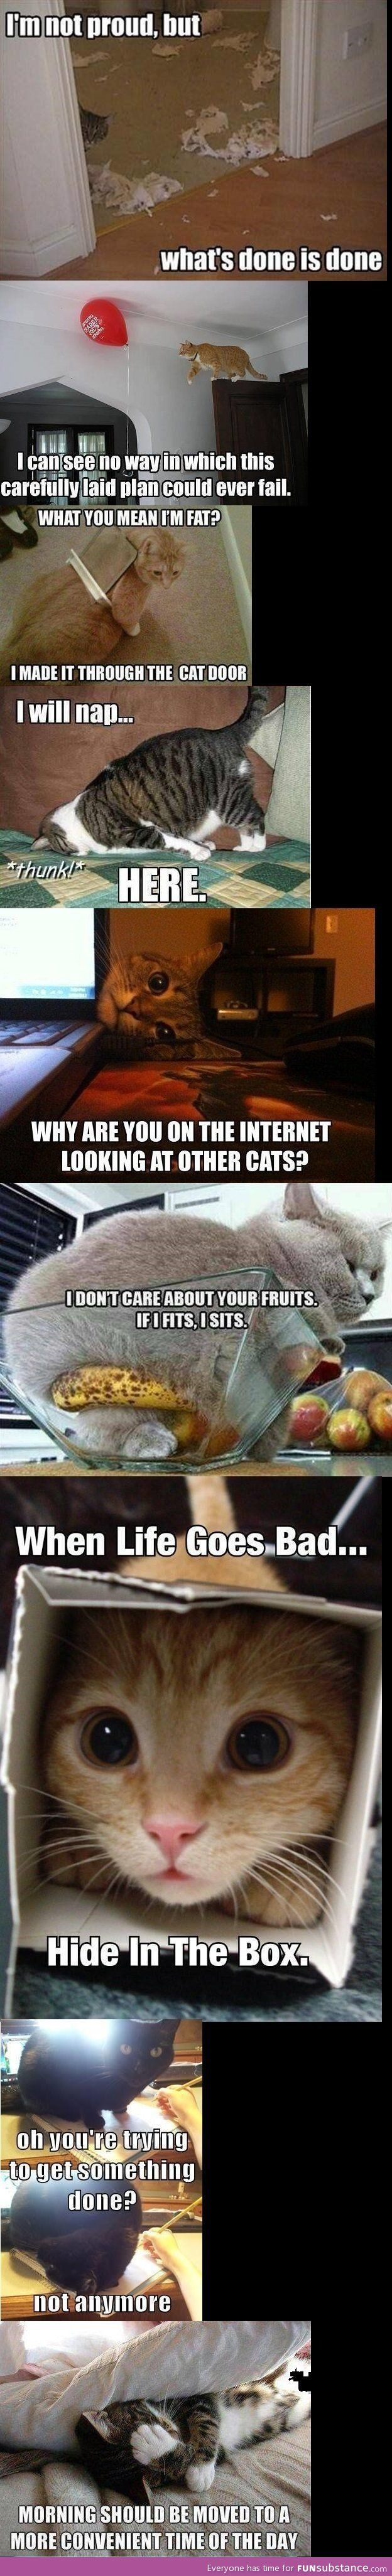 I usually don't find cat pictures funny... but the cat in the fruit bowl was hilarious